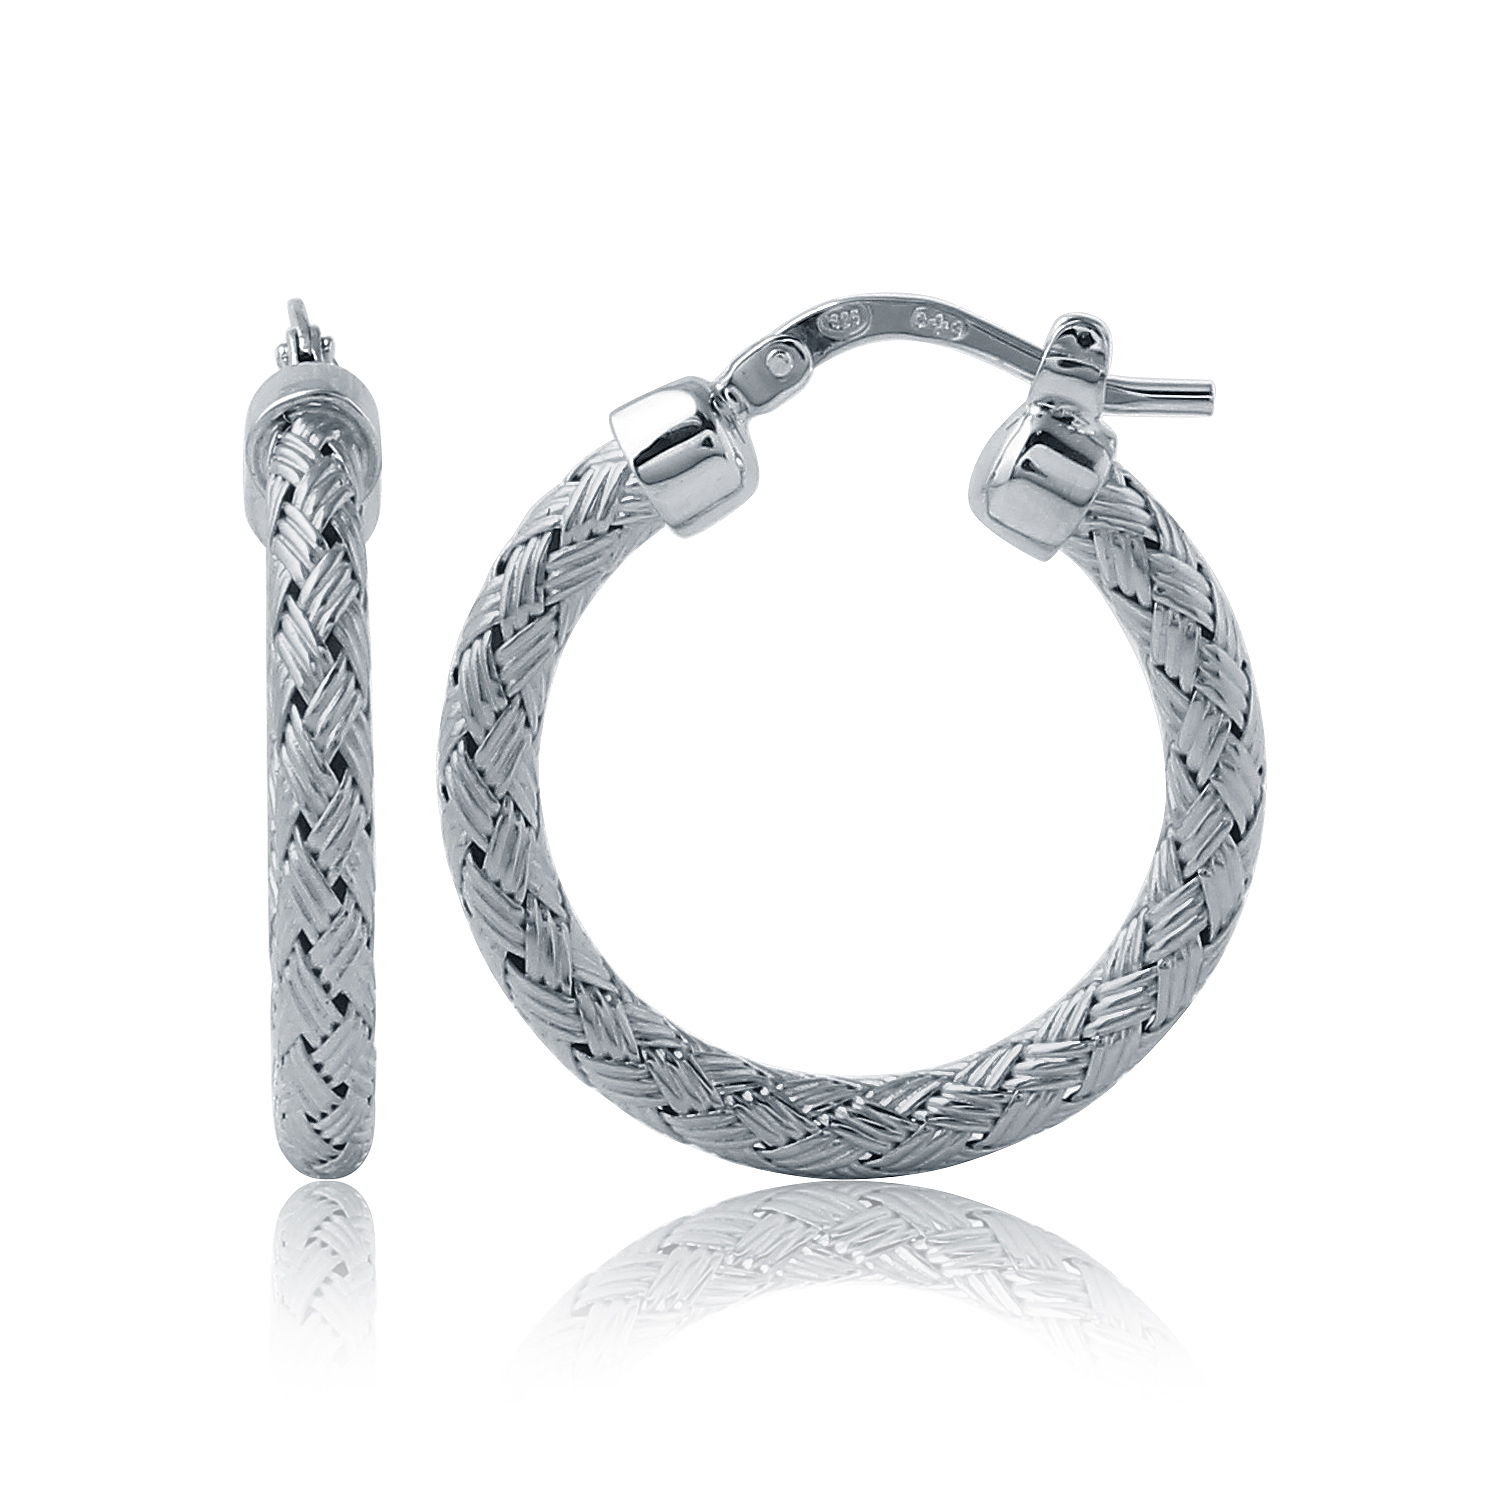 CHARLES GARNIER - Sterling Silver Hoop Earrings, 25mm